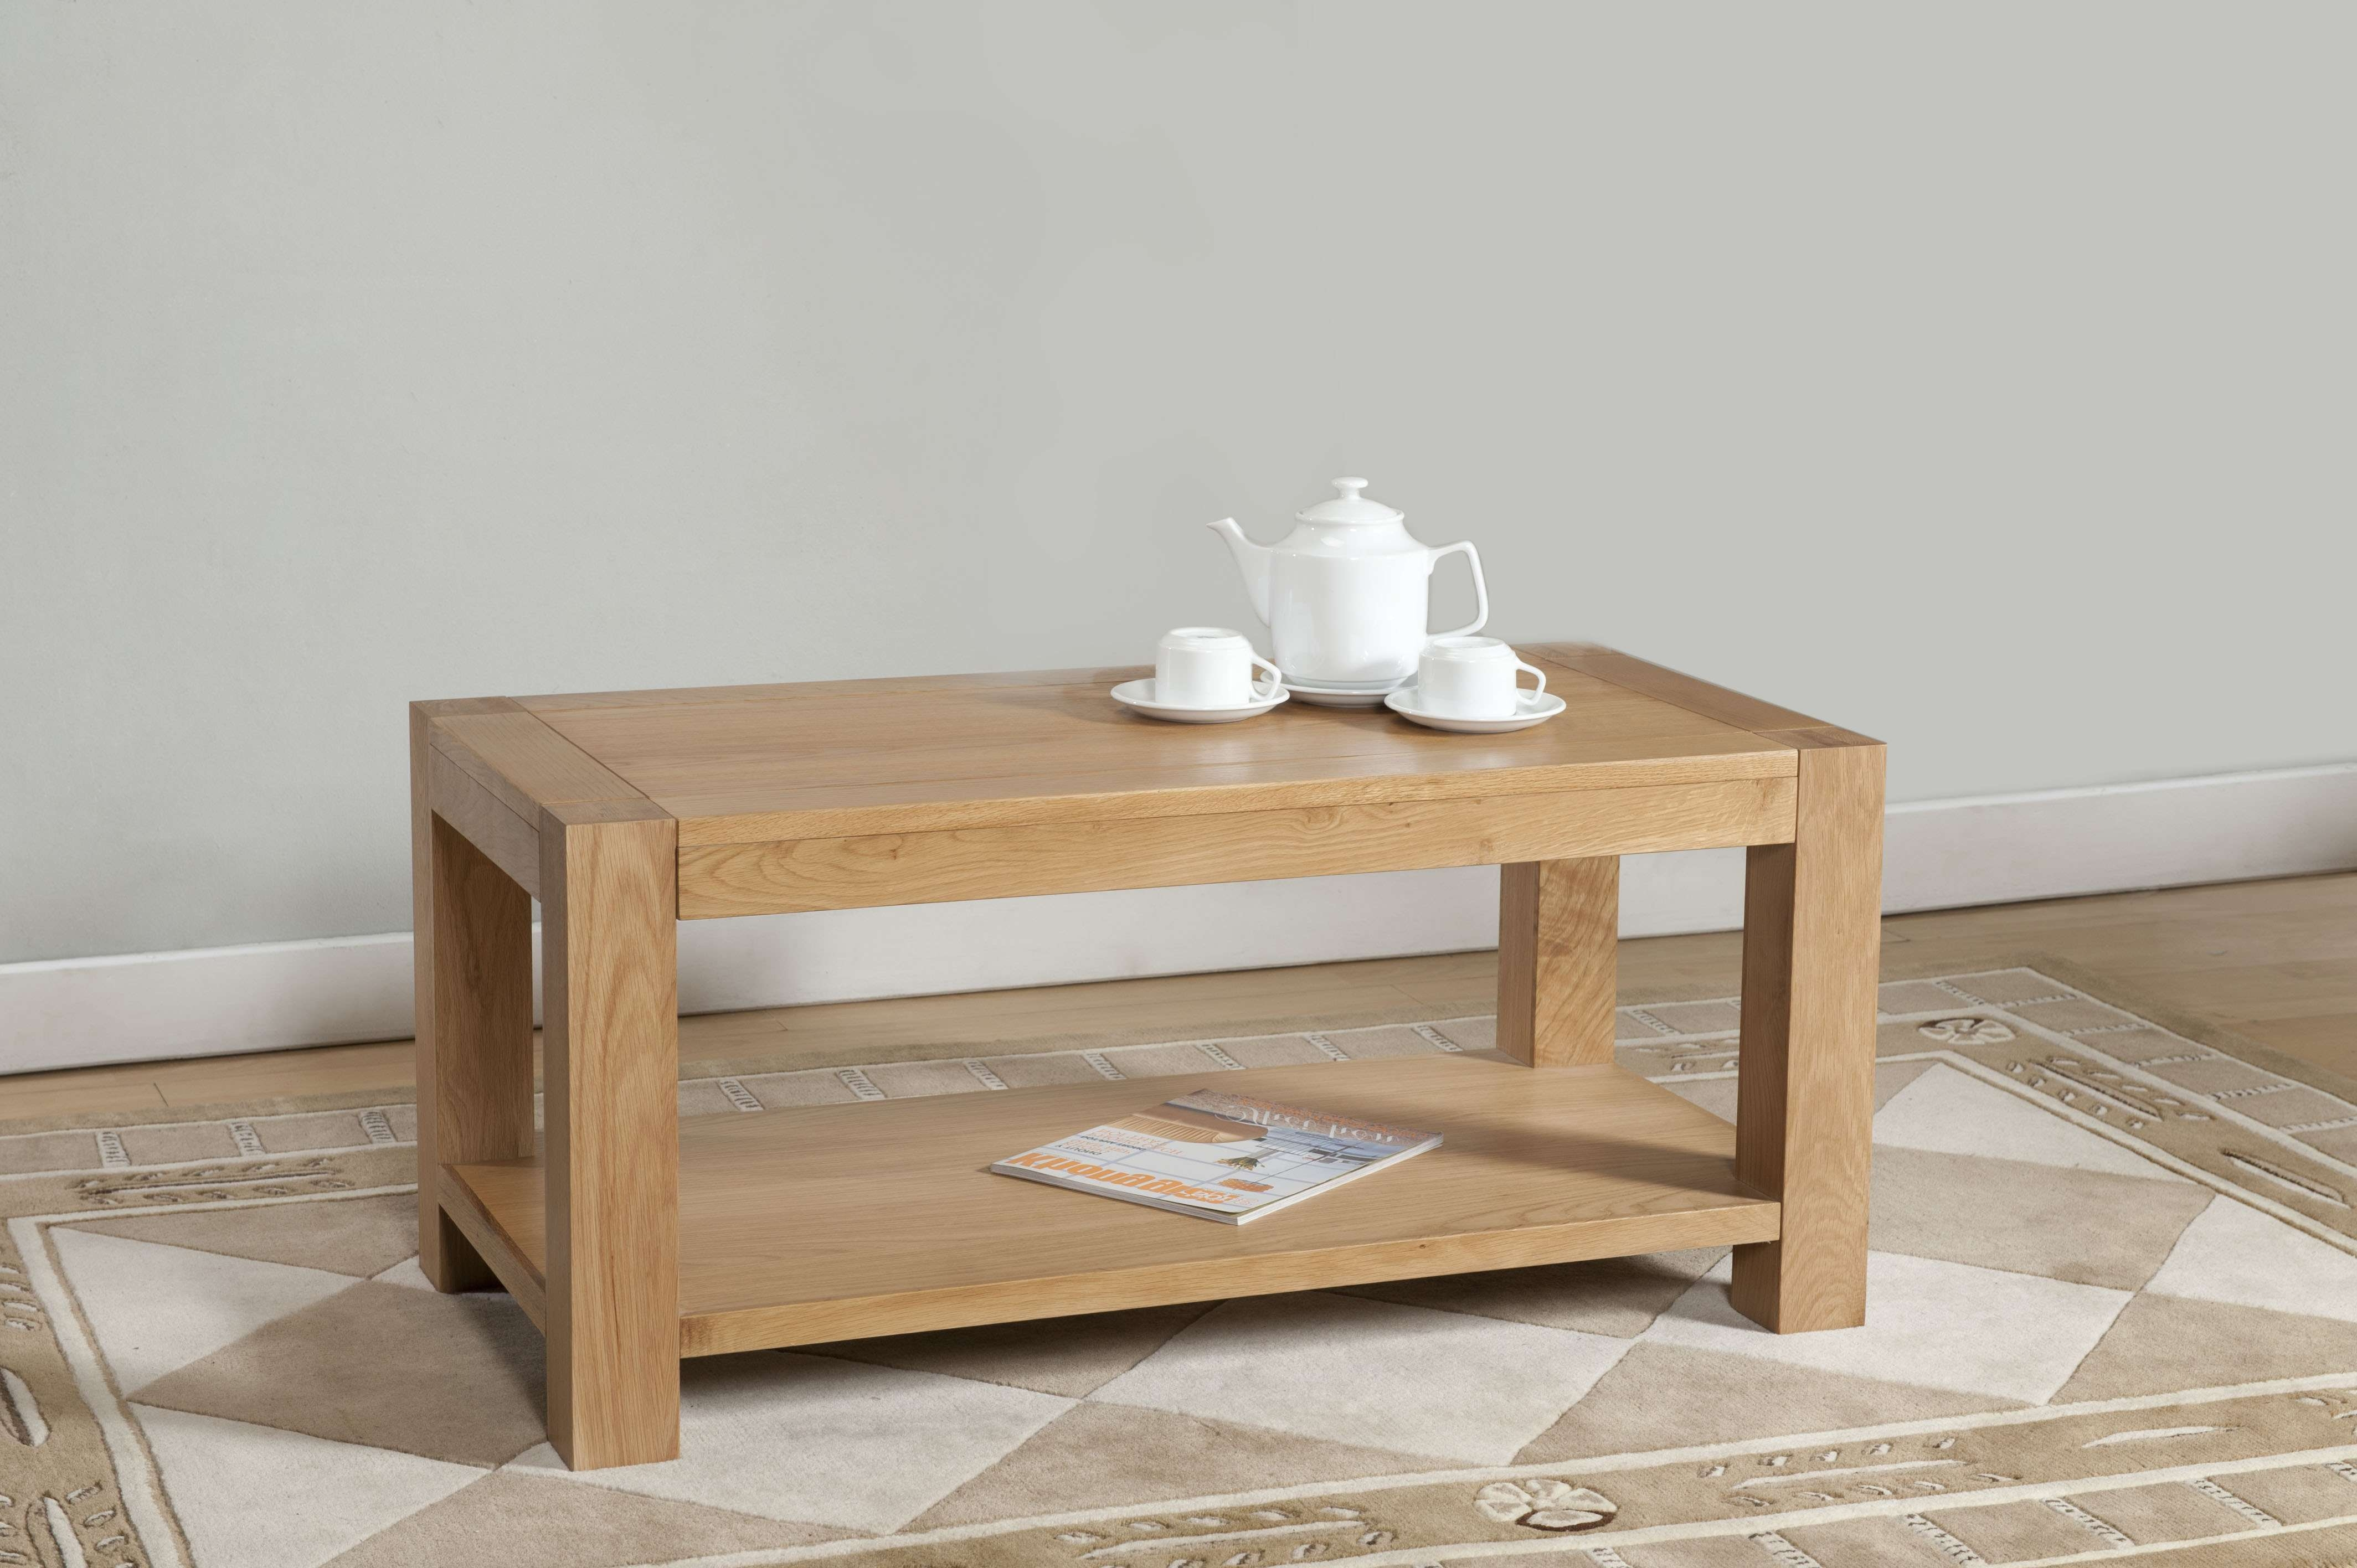 Most Recently Released Oak Coffee Tables With Shelf Pertaining To Milano Oak Coffee Table With Shelf (View 12 of 20)